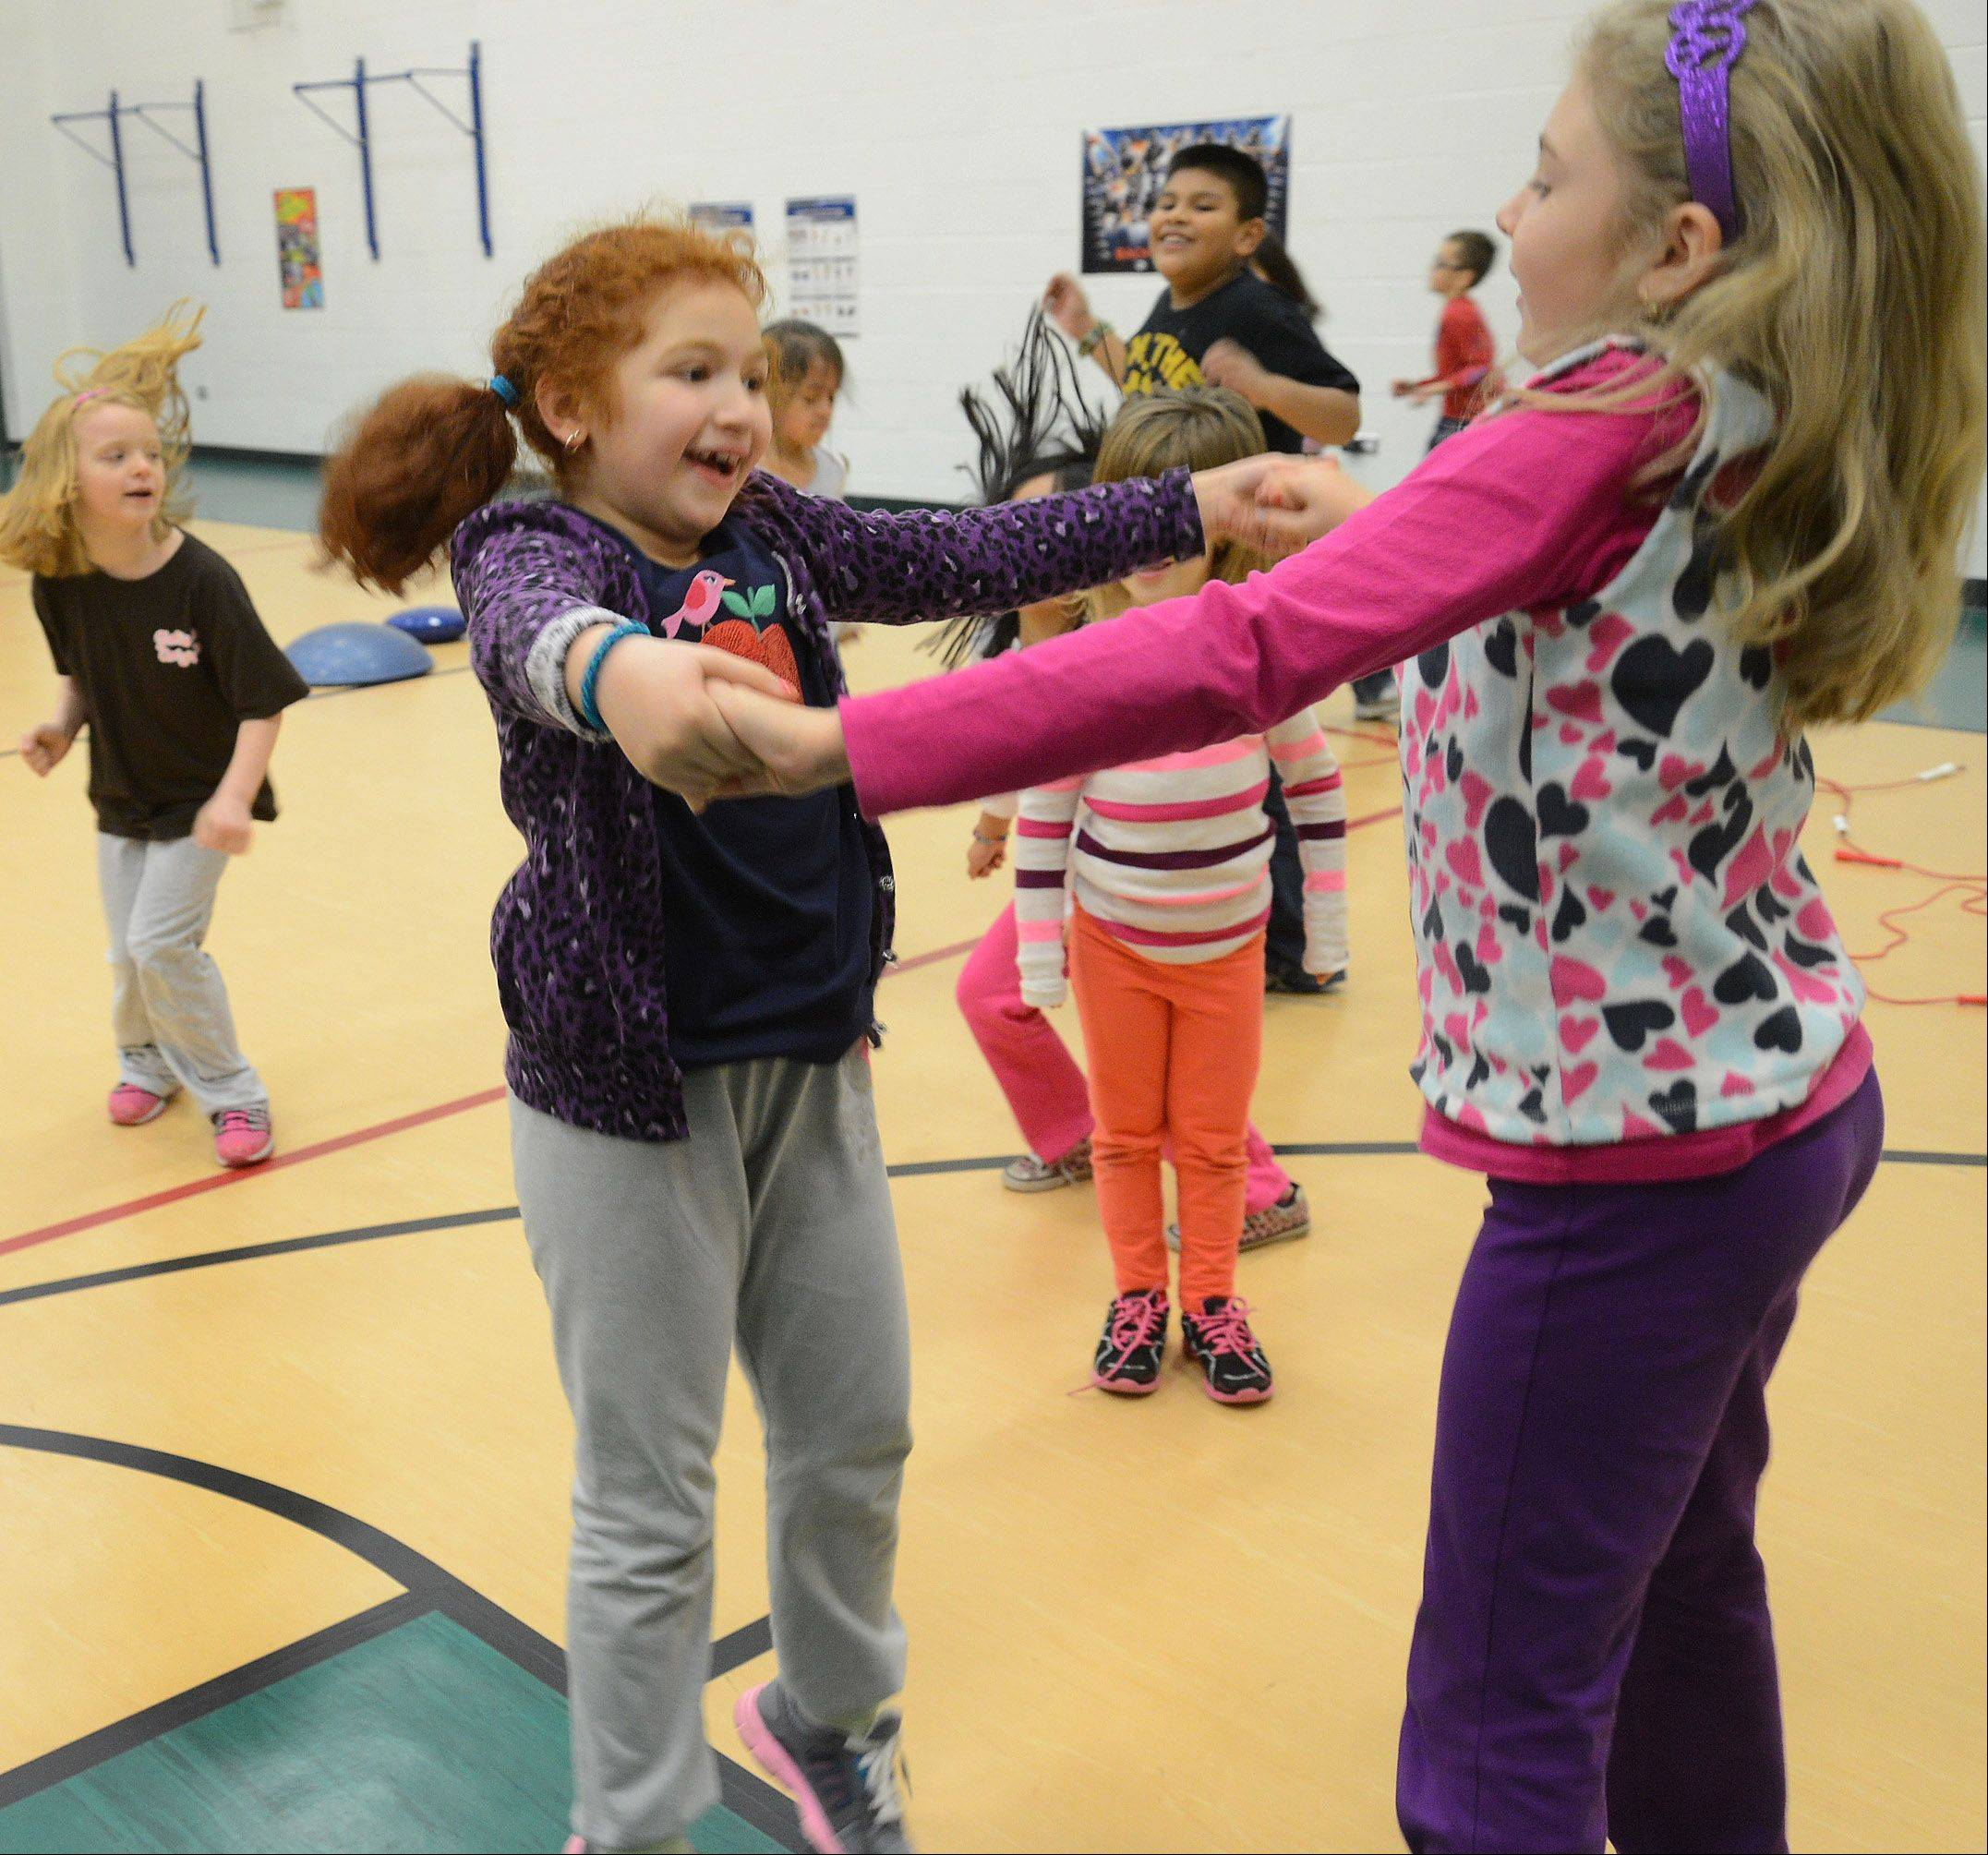 Leann Shaya, left, and Natalie Rybinski exercise during one of Will Hogan's recent P.E. classes at the Ridge Family Center for Learning in Elk Grove Village.